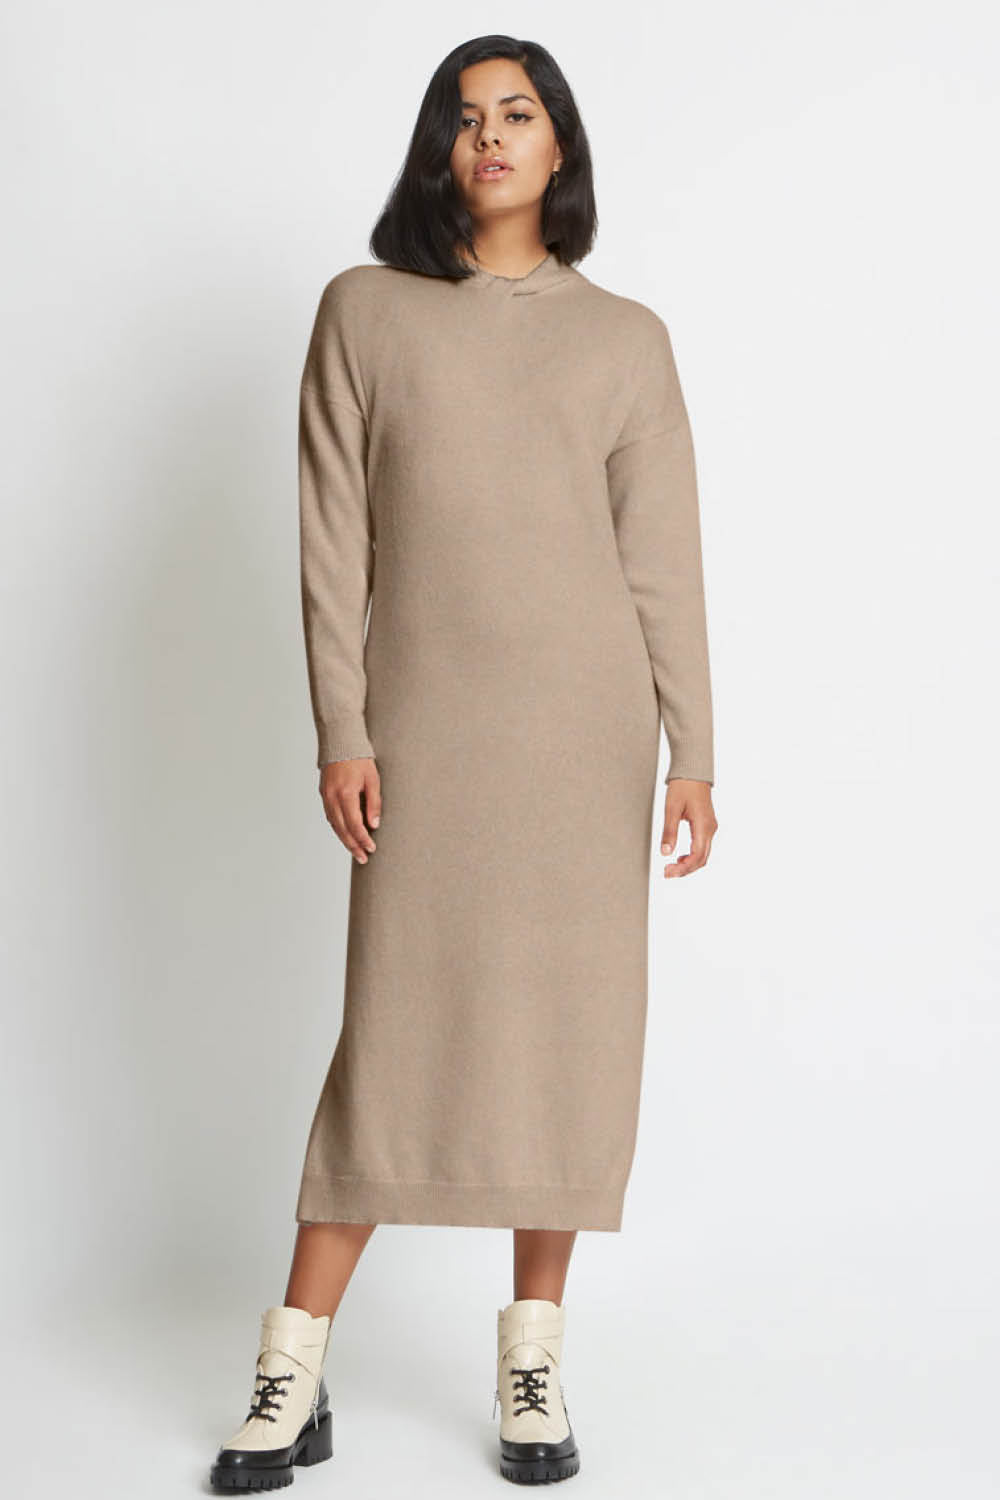 Blair Sweater Dress in Fawn